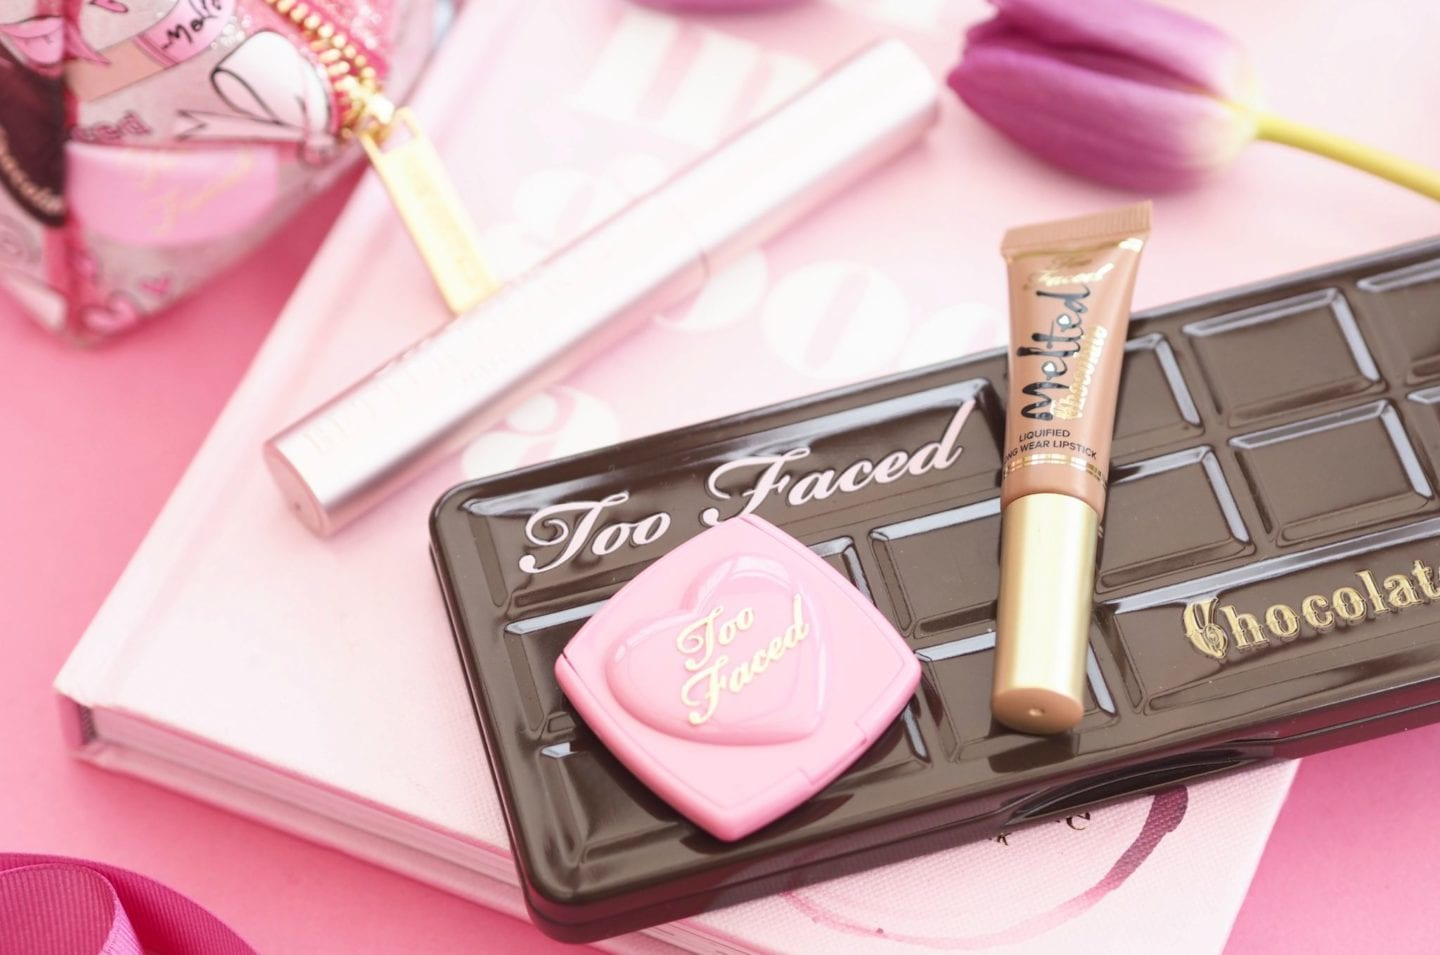 Chocolate Palette too FACED X skinnydip london